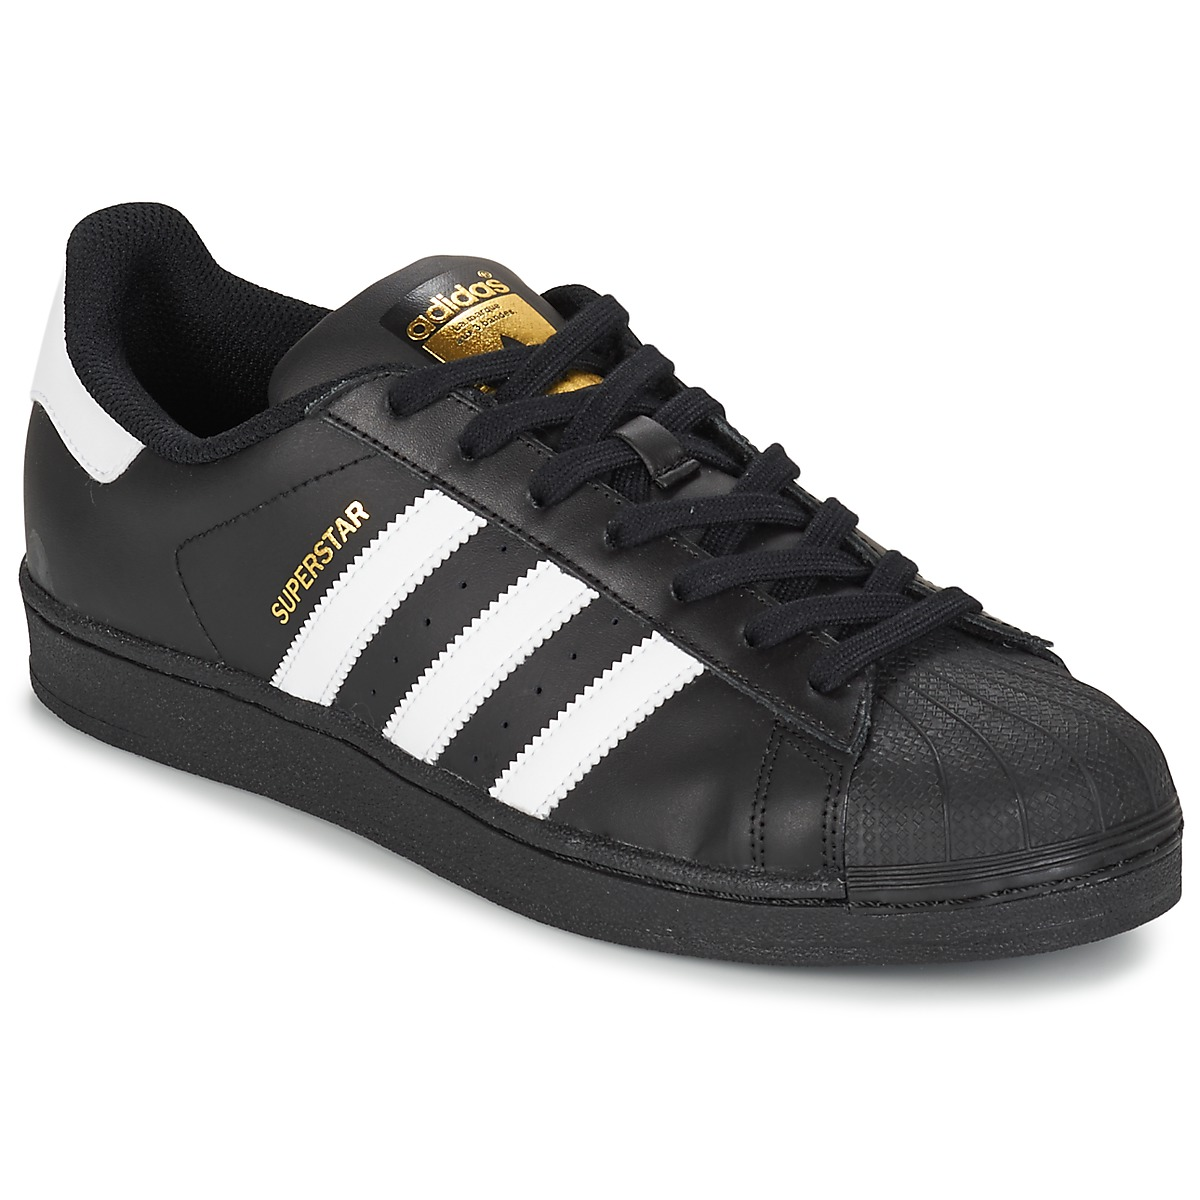 prix le plus bas 7cb22 ef9eb Chaussures Baskets basses adidas Originals superstar ...